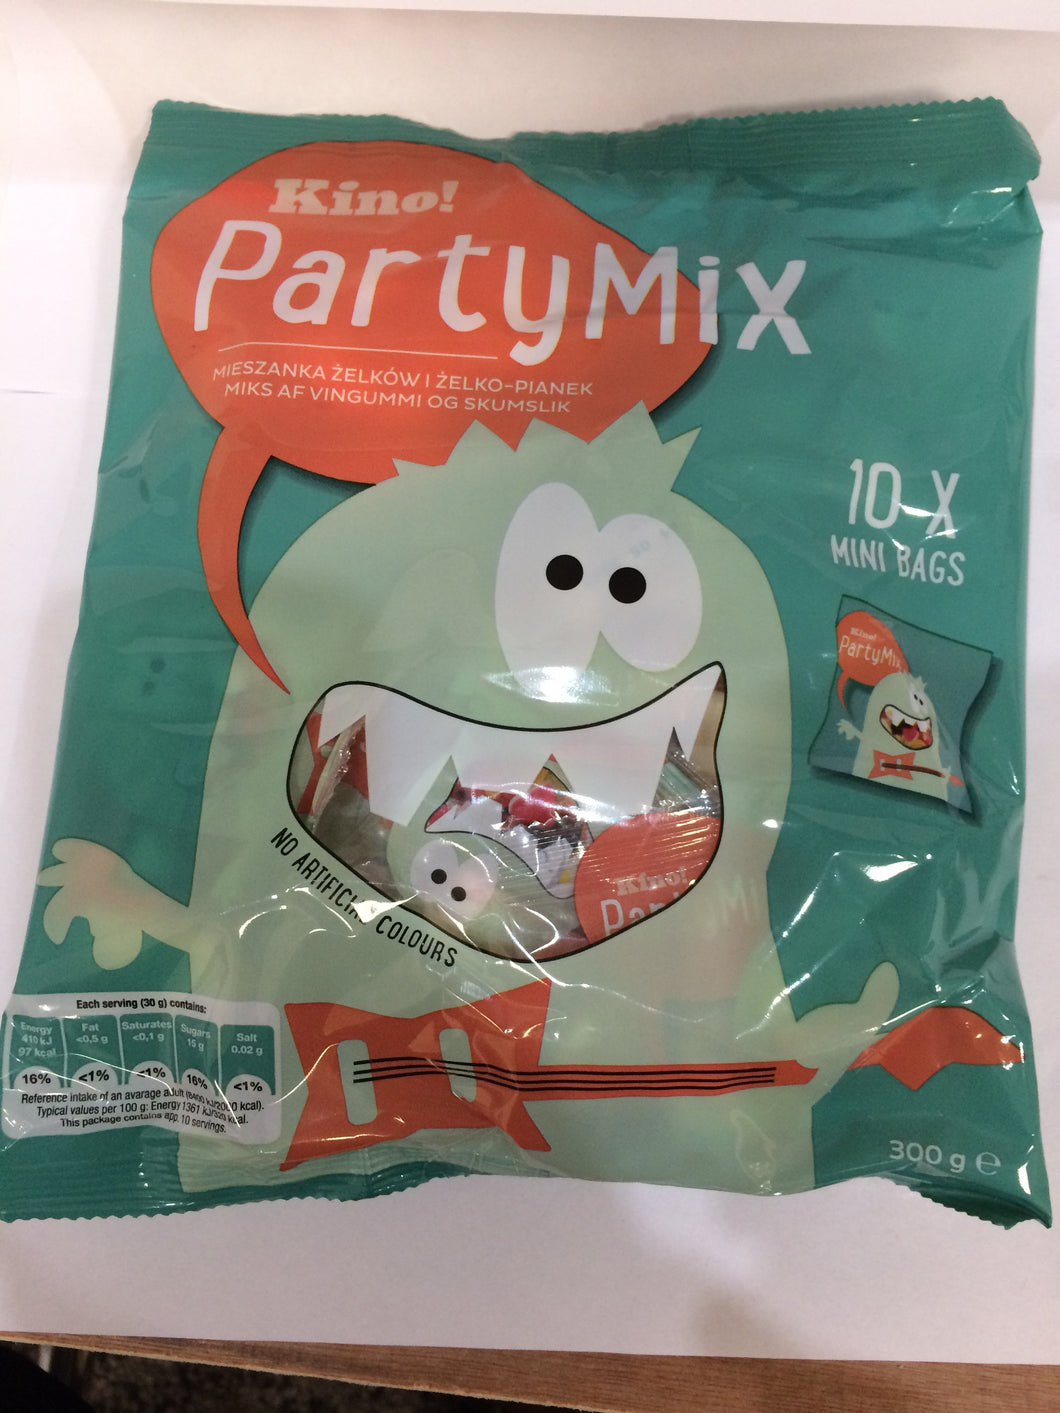 Kino! Sweets Party Mix 10x 30g Mini Bags - No Artificial Colours 300g